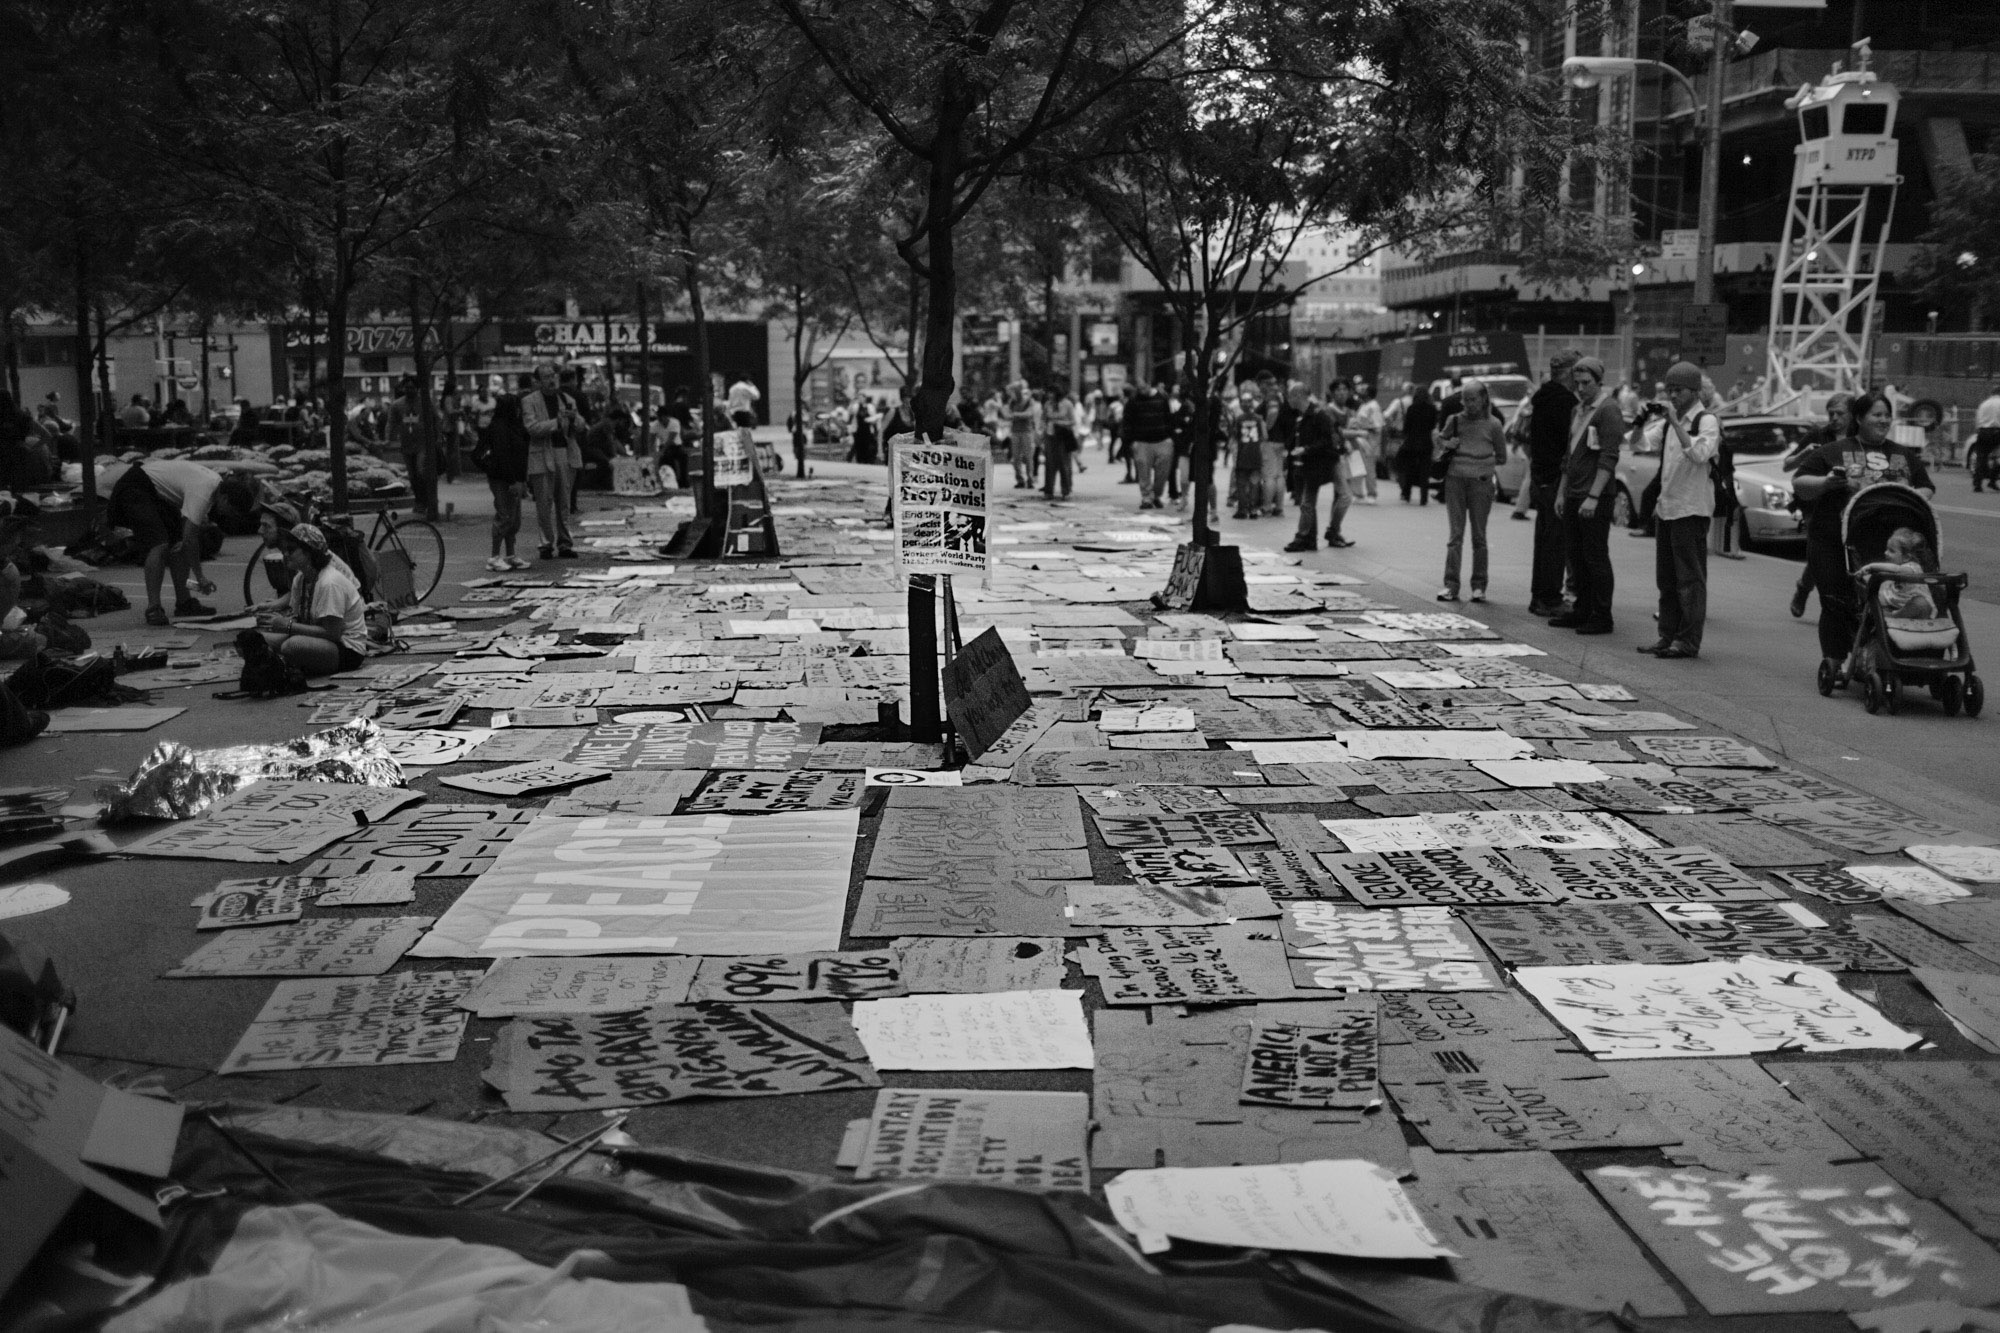 Protest signs lay on the ground at Zuccotti Park.